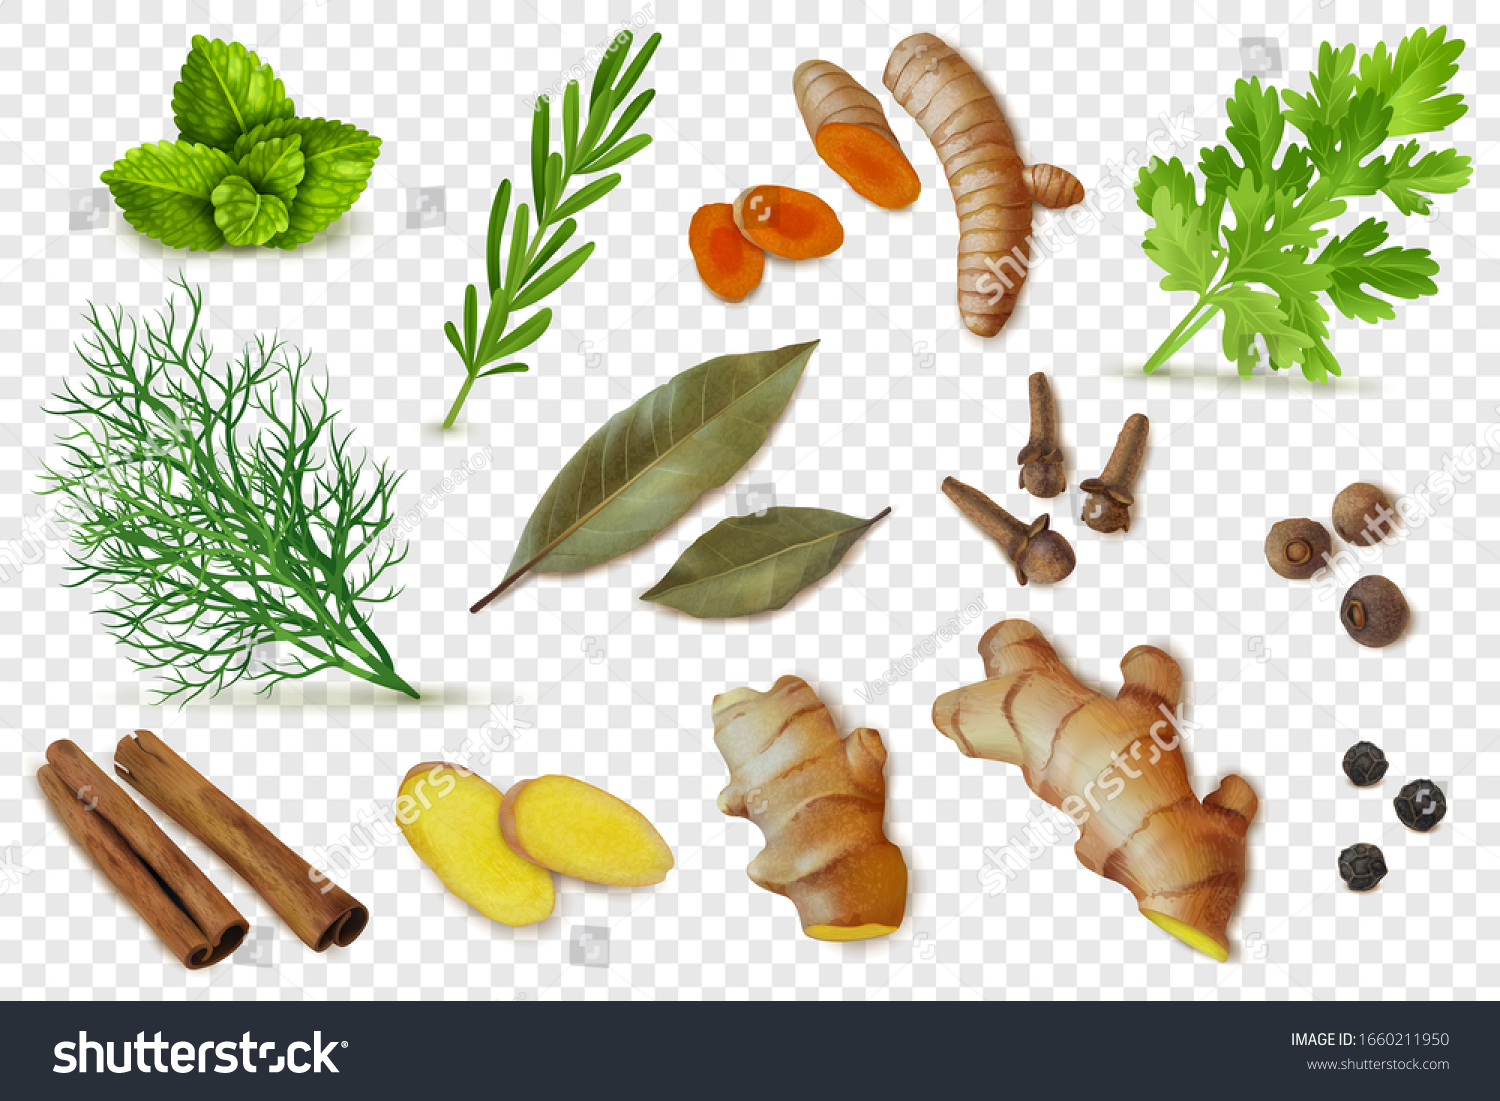 Herbs, dry spices and spicy roots set. Realistic style. Textured items. Isolated objects cillection. Ginger, turmeric, slices, roots, Bay leaf, pepper. Transparent background.Vector illustration #1660211950